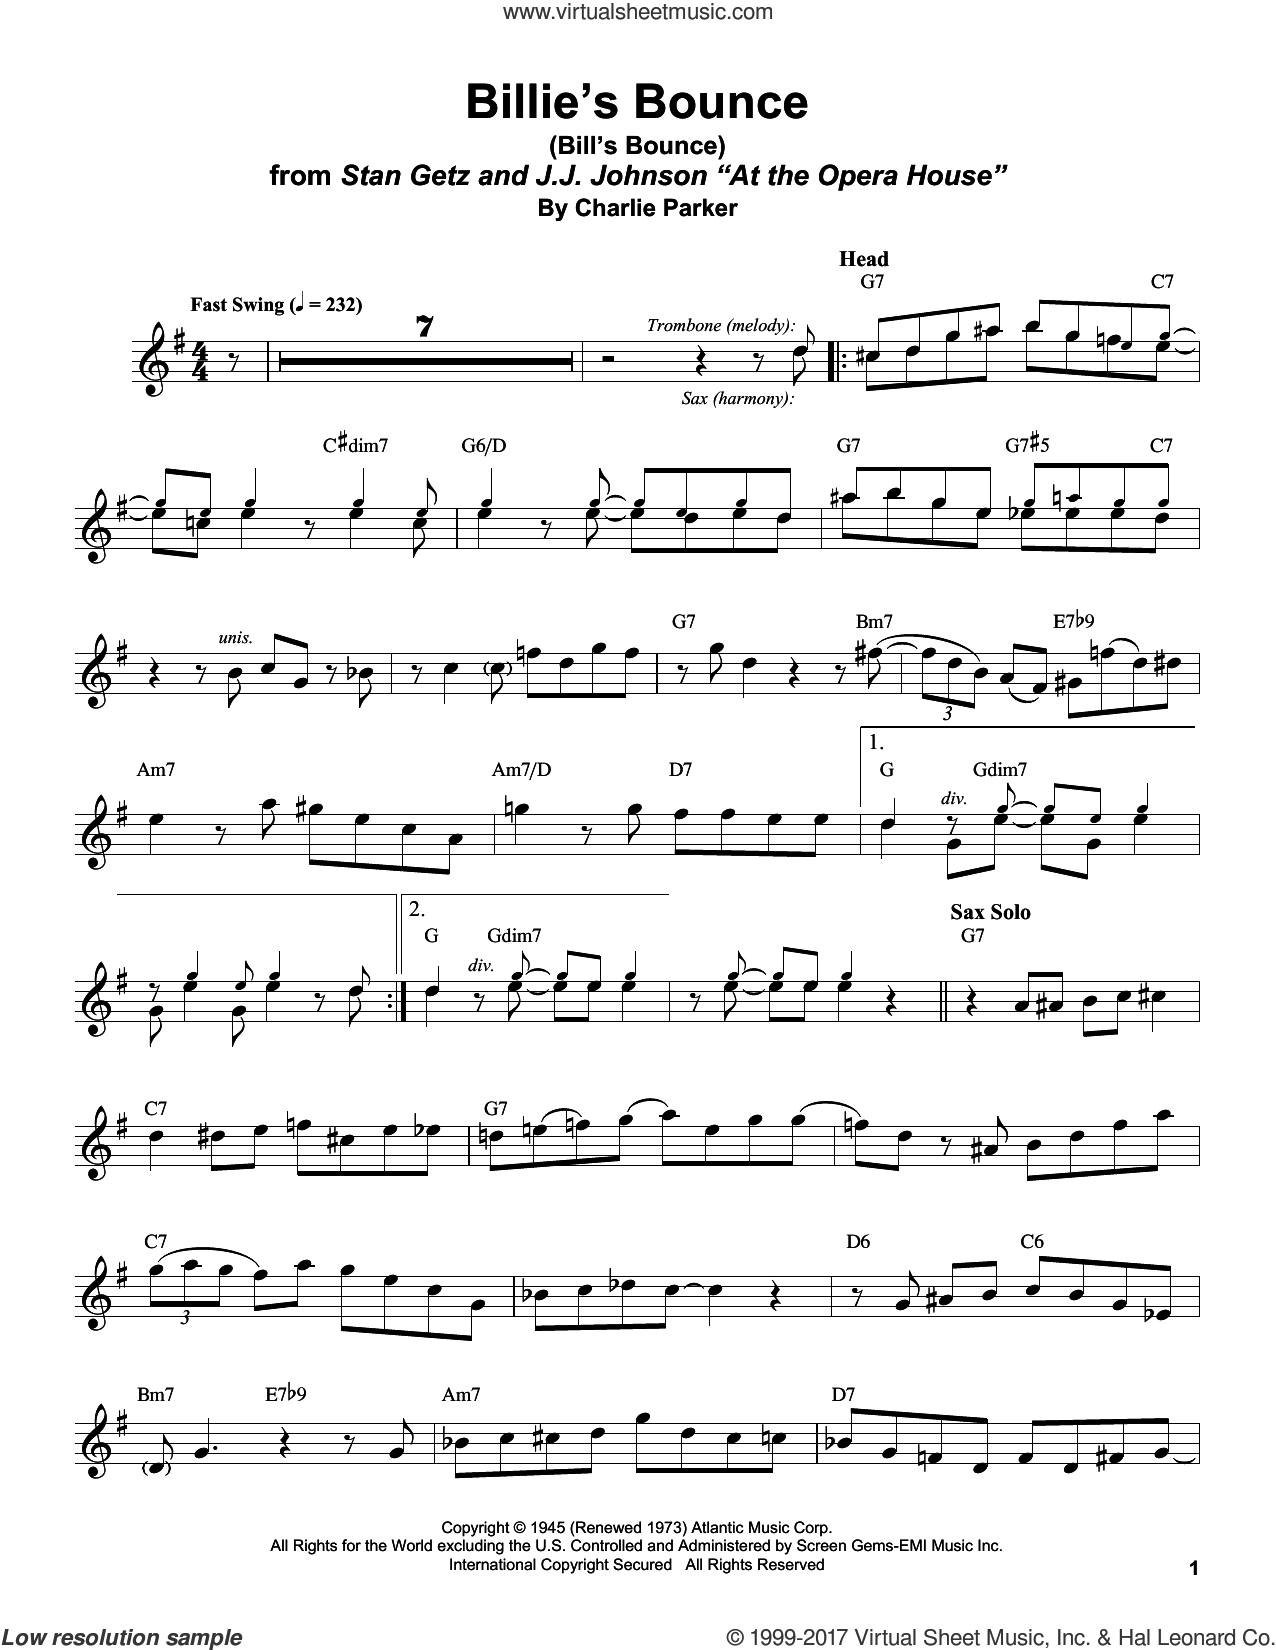 Billie's Bounce (Bill's Bounce) sheet music for tenor saxophone solo (transcription) by Stan Getz and Charlie Parker, intermediate tenor saxophone (transcription)